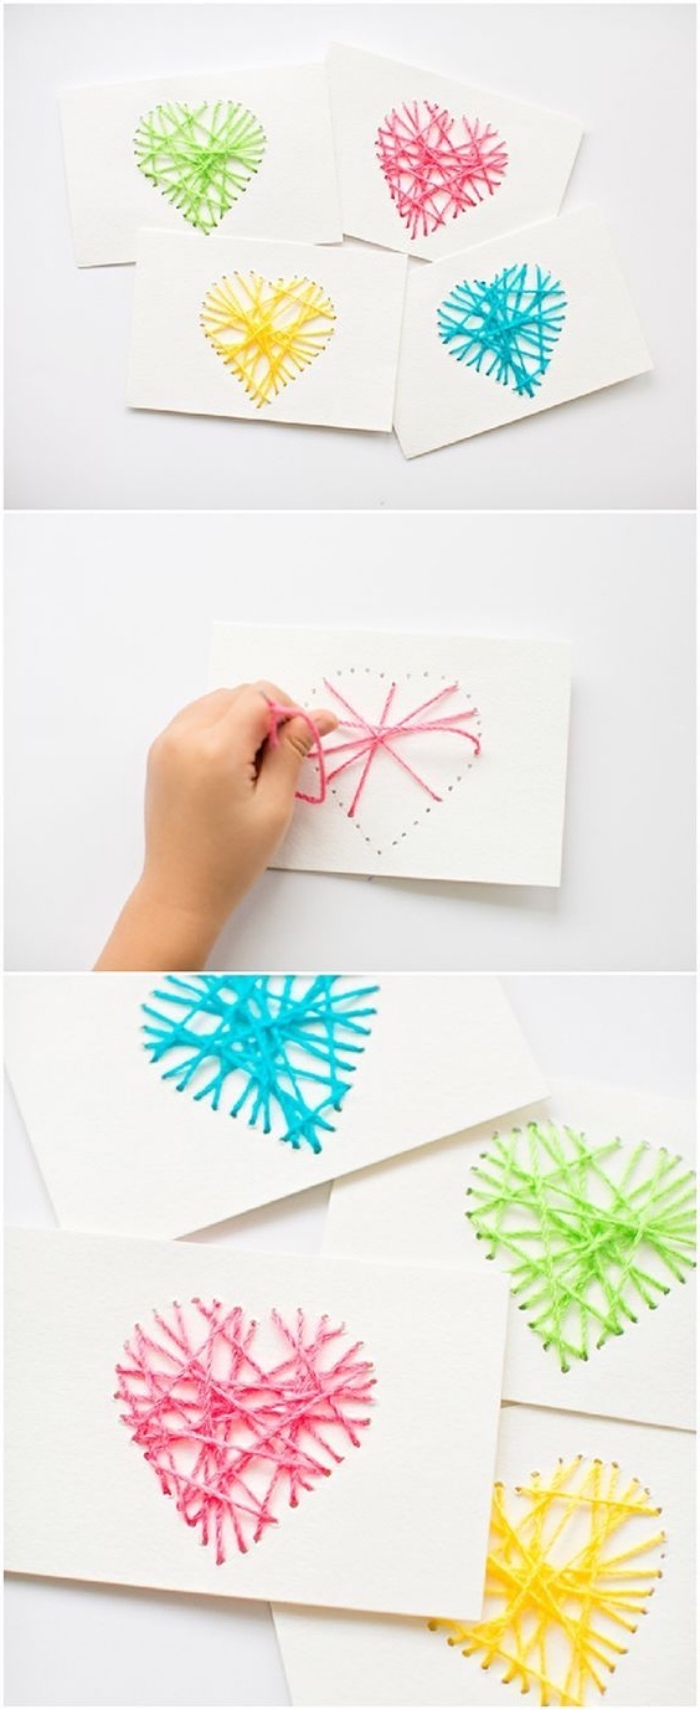 greeting cards, step by step, diy tutorial, preschool learning activities, hearts made of colourful strands